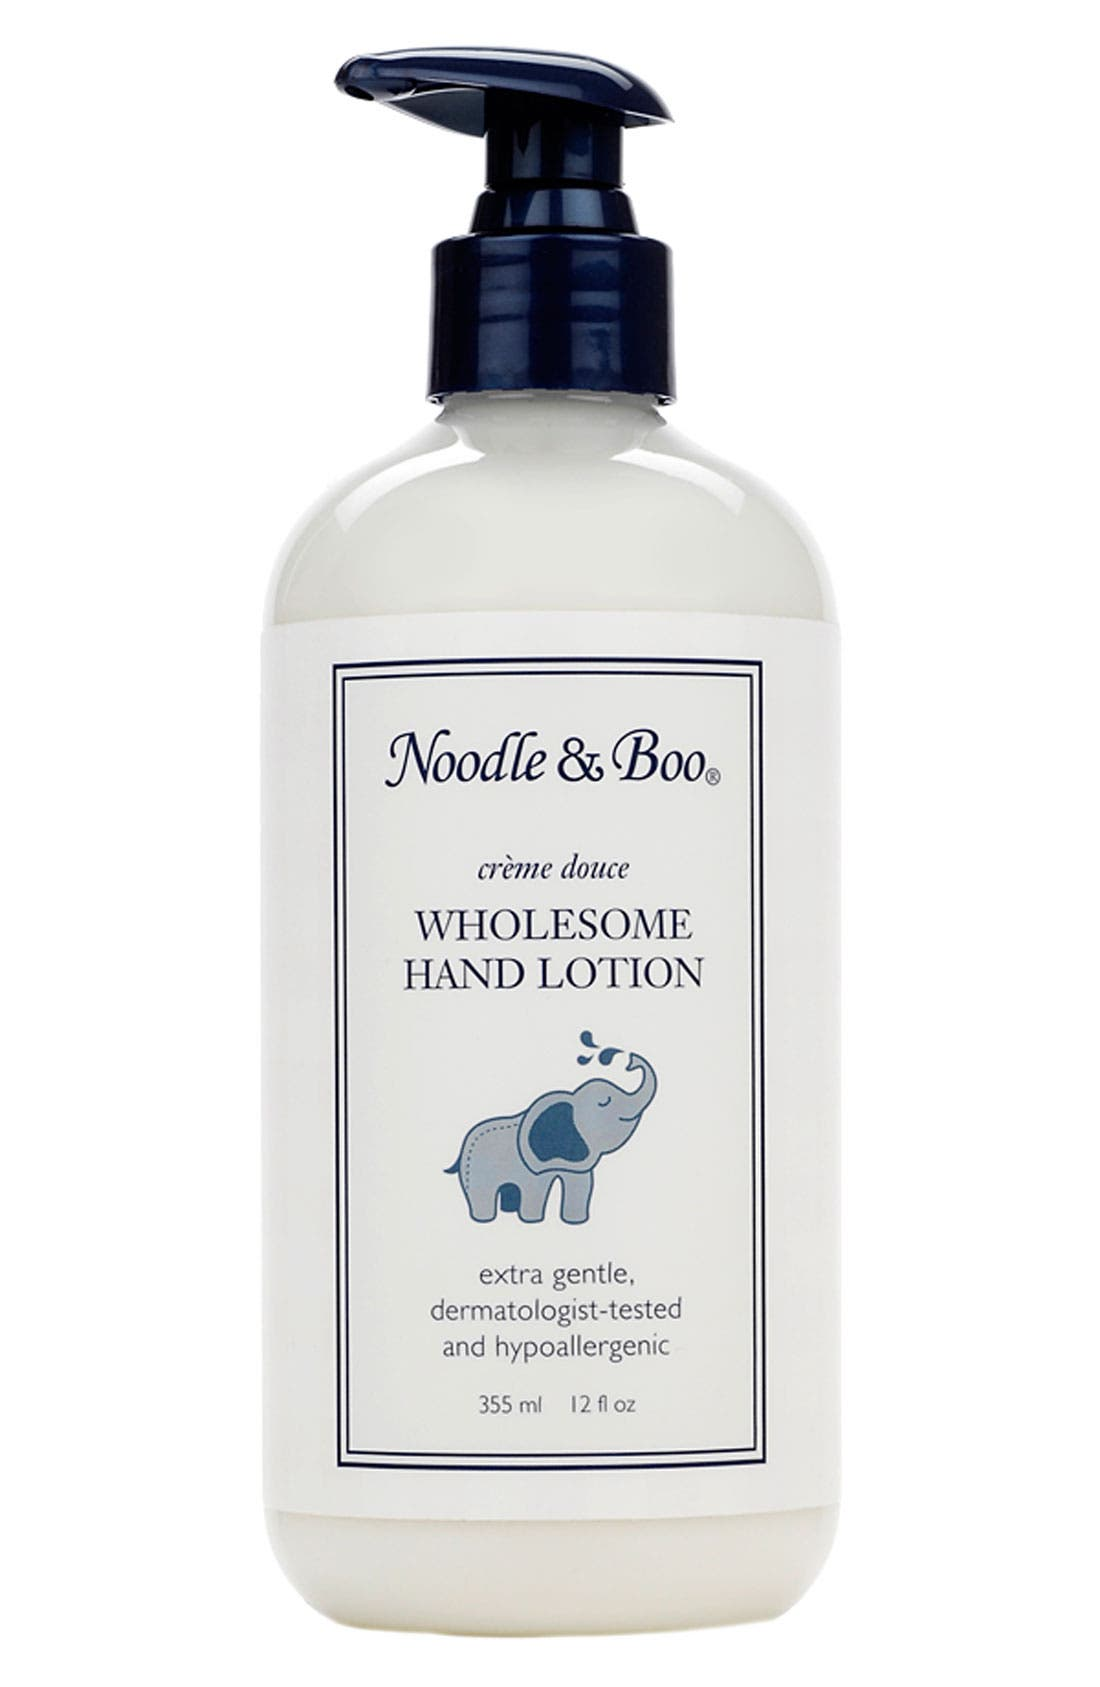 Noodle & Boo Wholesome Hand Lotion